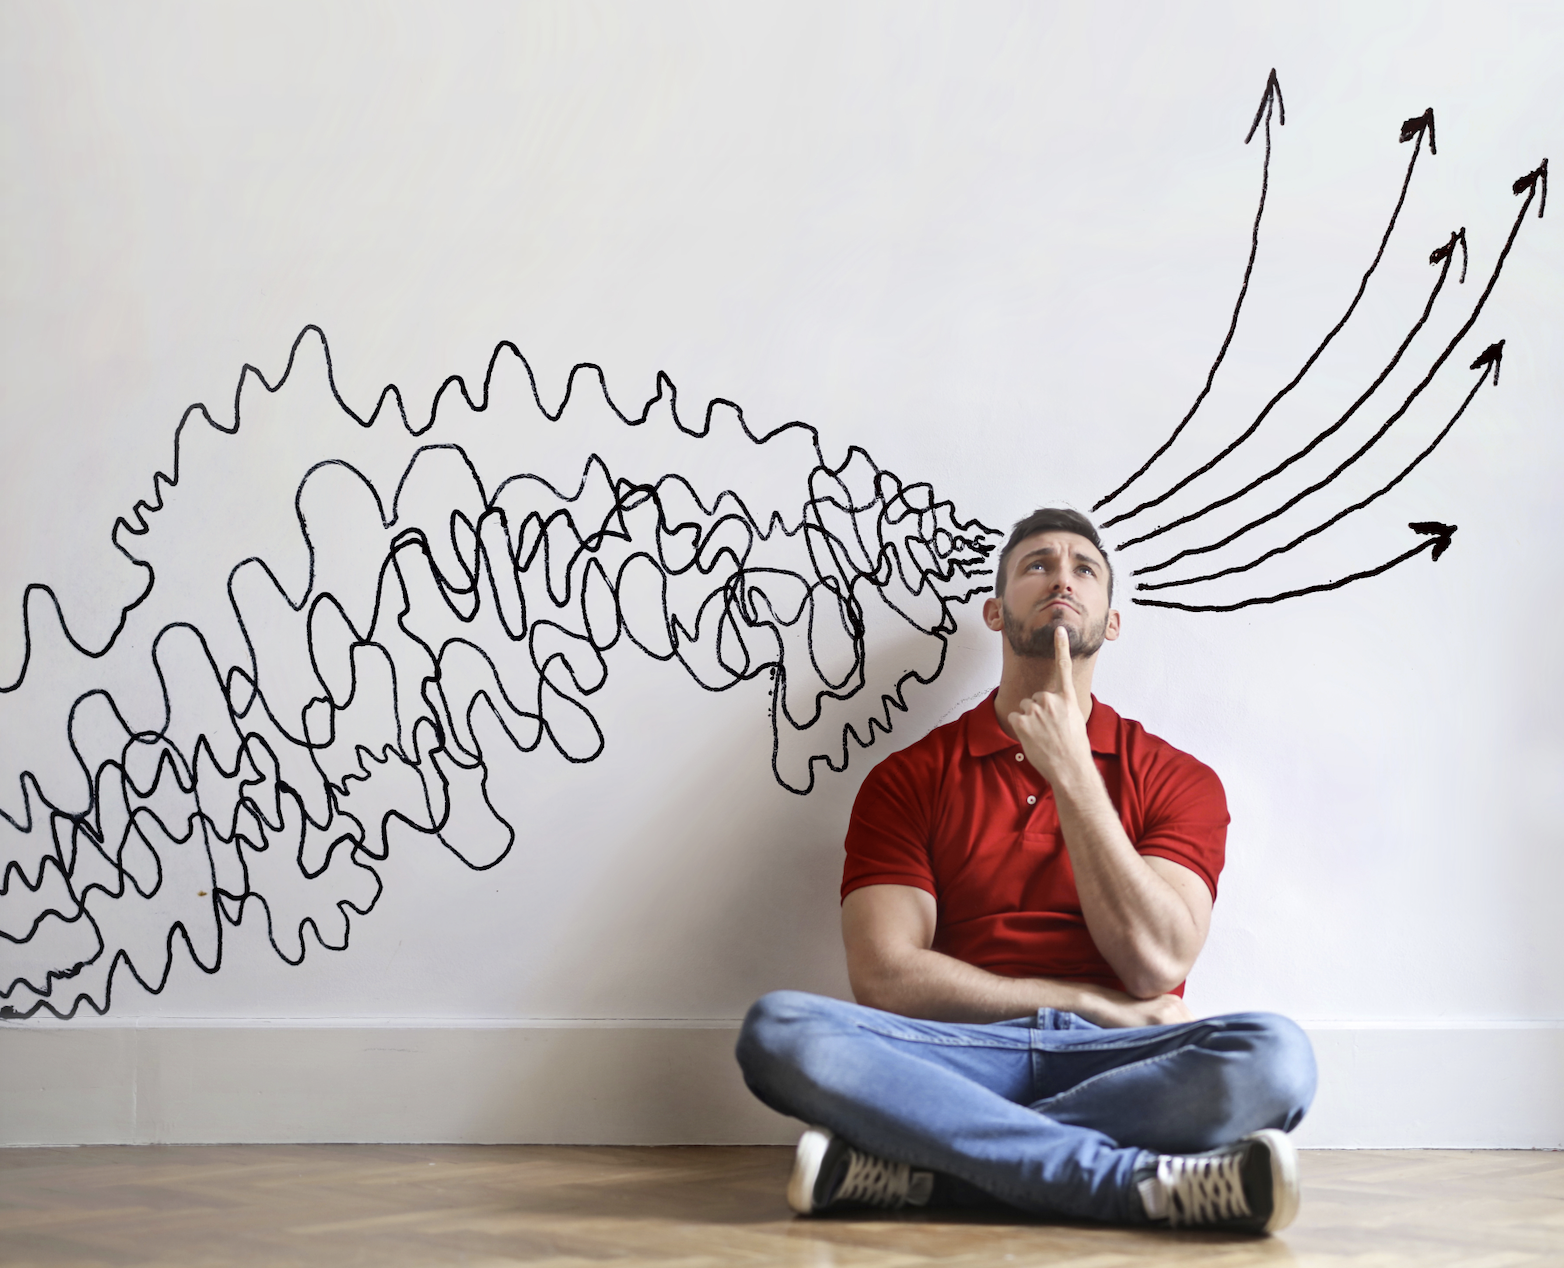 Man thinking about problem solving